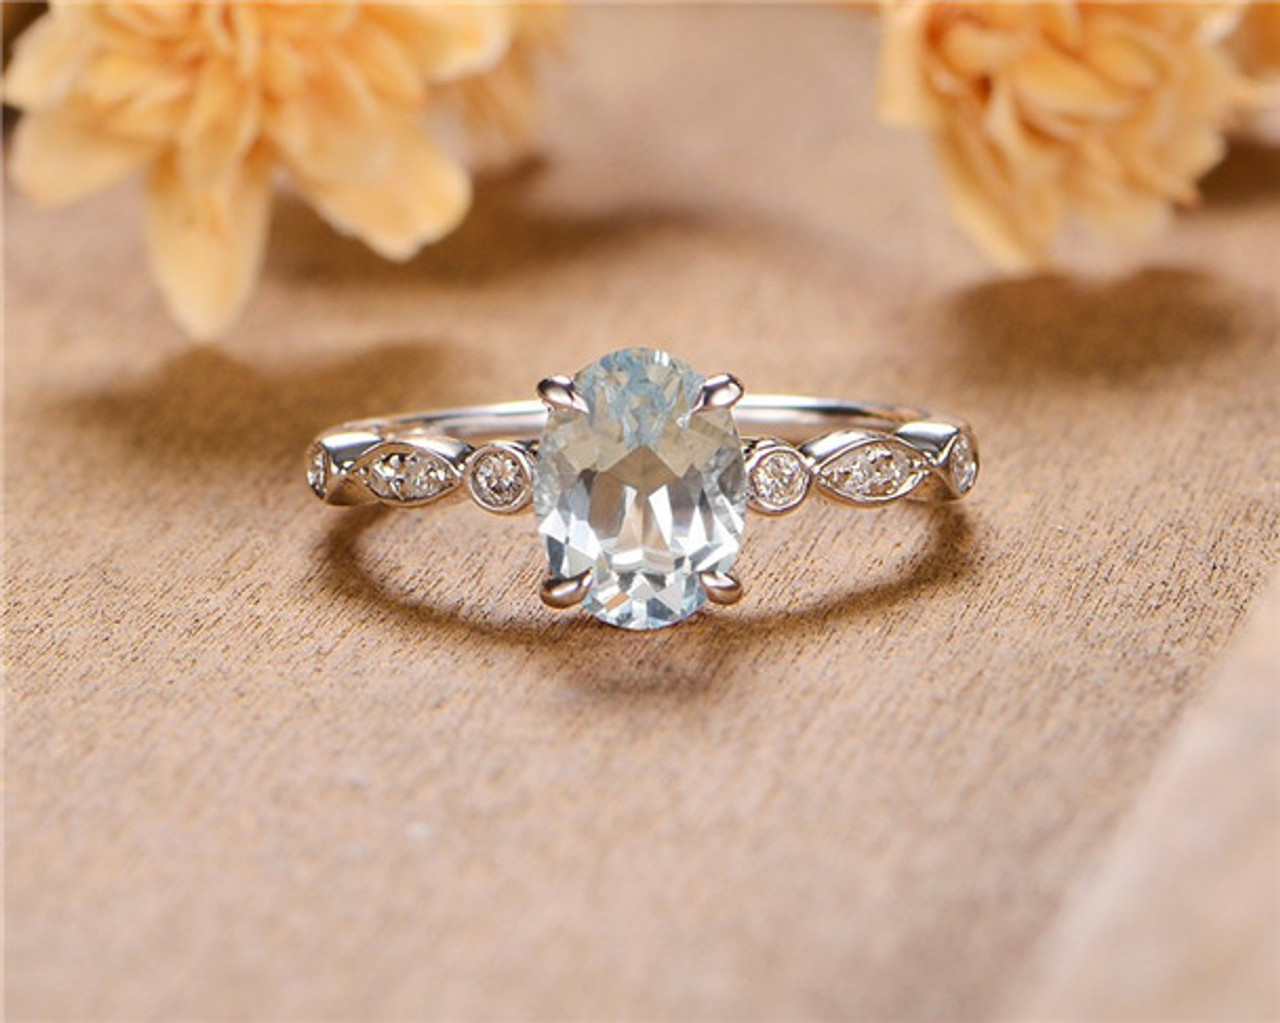 Women Wedding Rings.Aquamarine Engagement Ring Oval Cut Solitaire Art Deco Diamond White Gold Bridal Women Wedding Ring Birthstone March Promise Anniversary